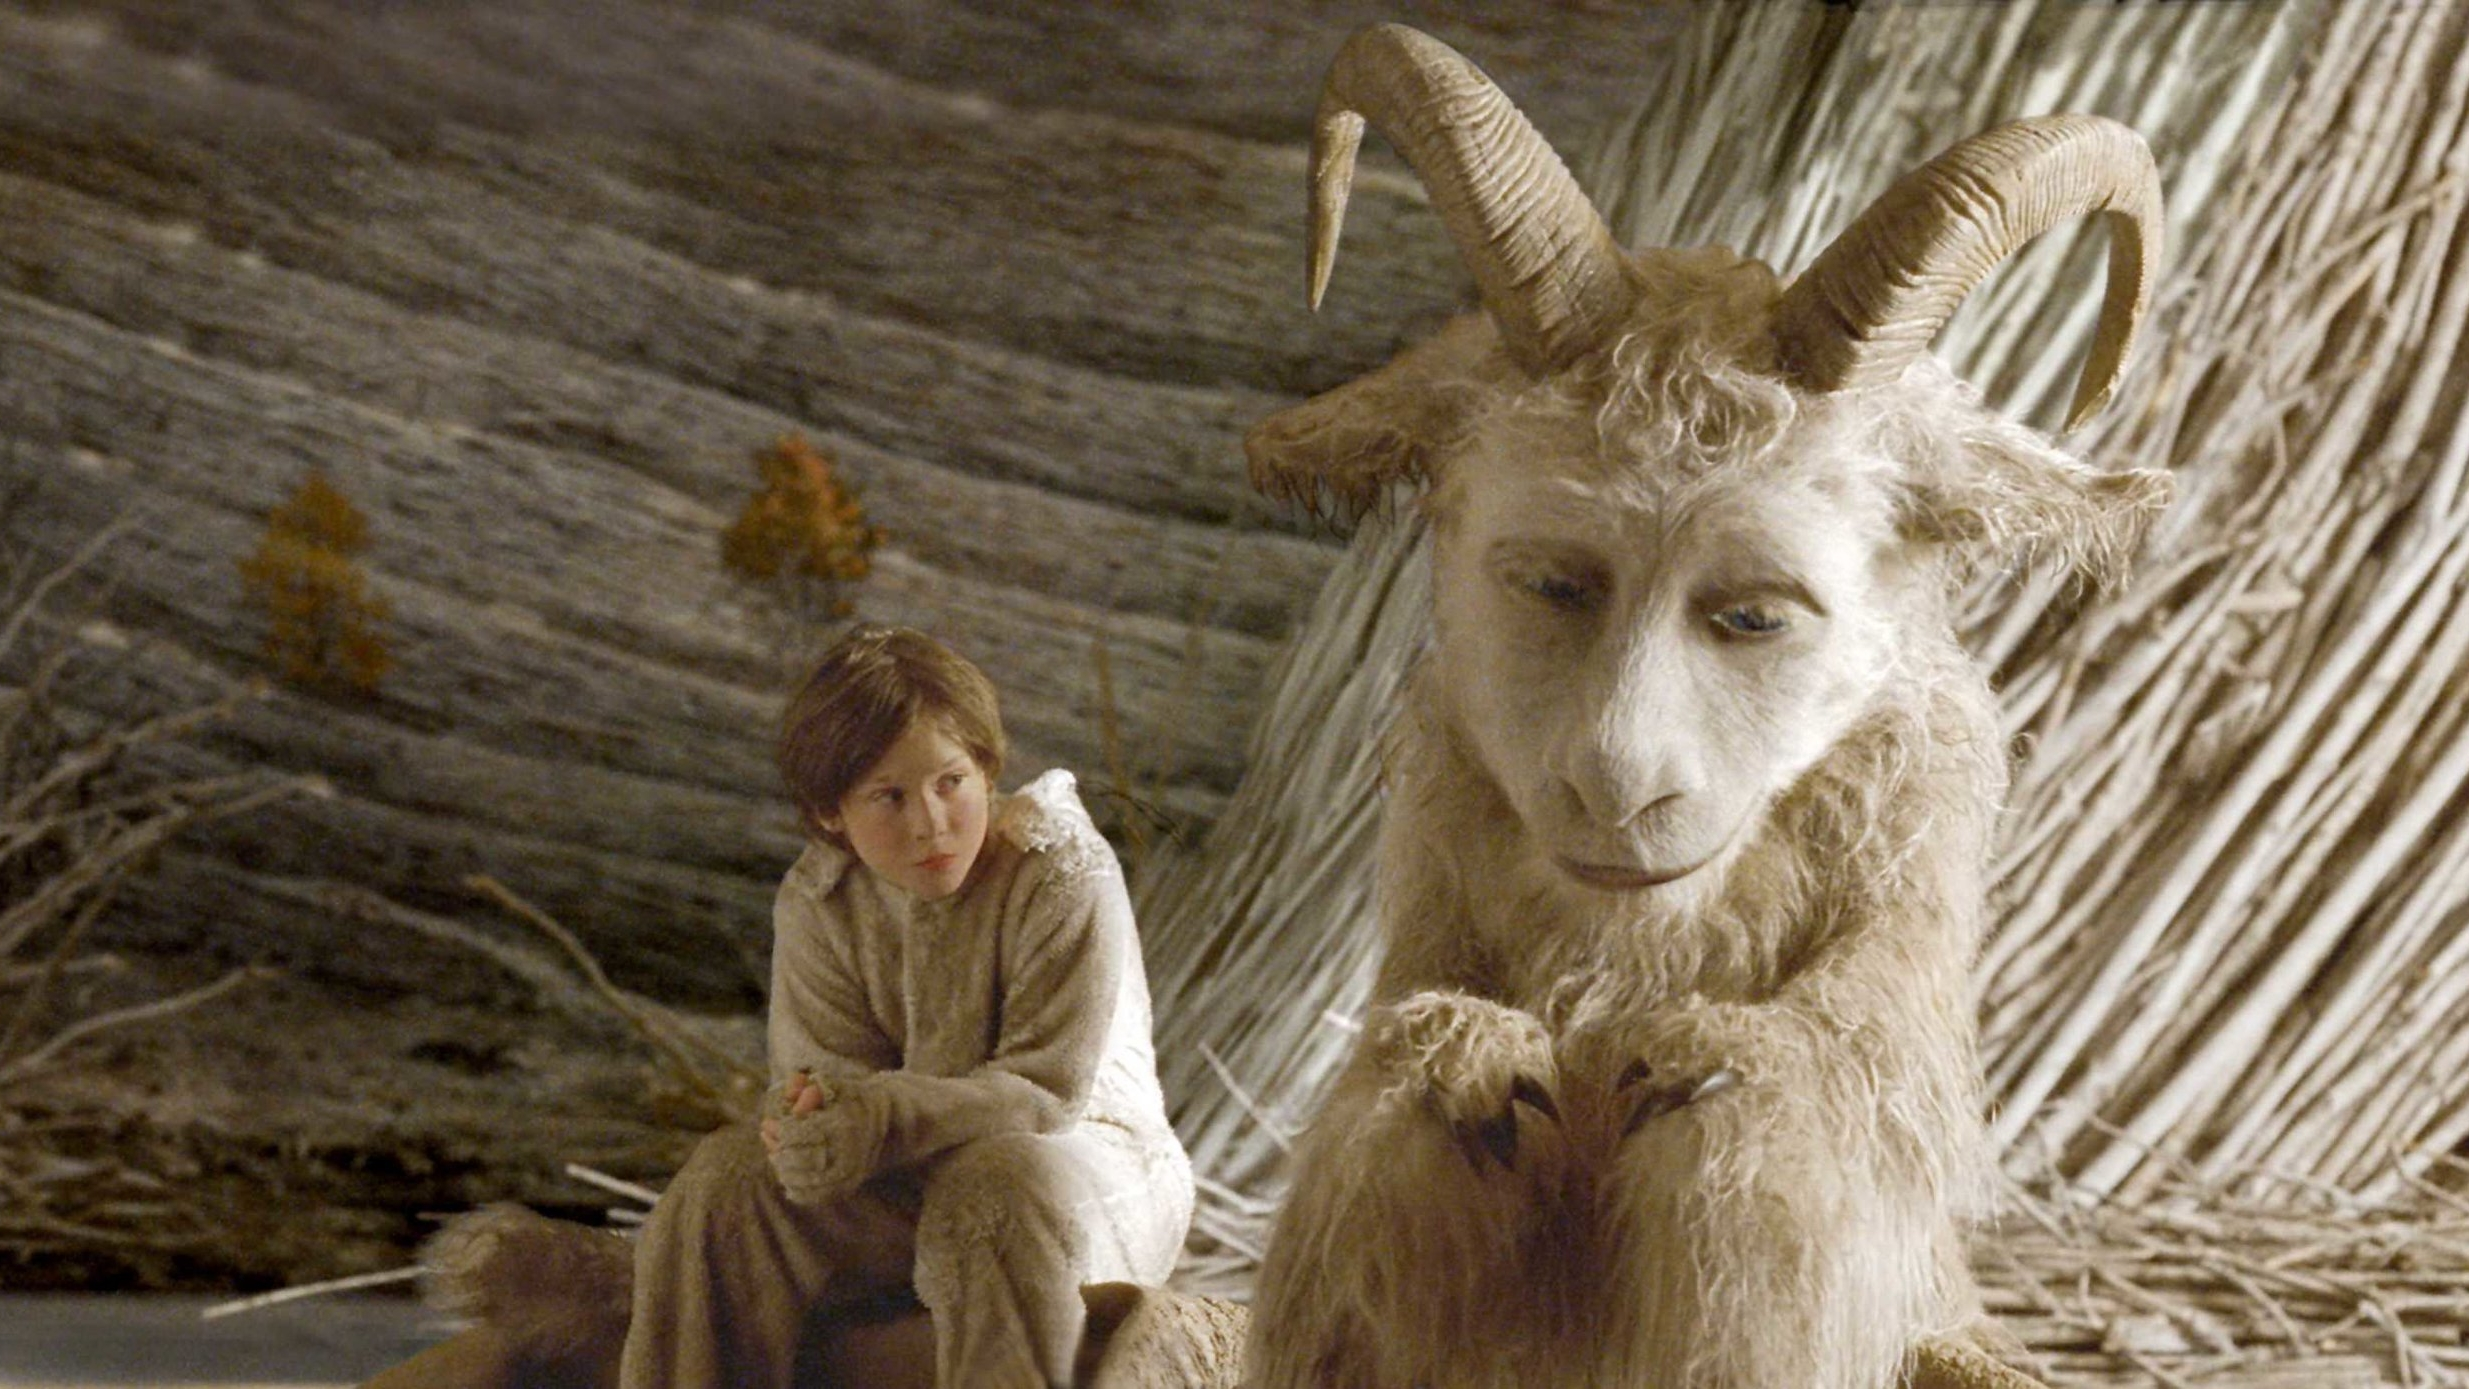 #51) Where the Wild Things Are - (2009 - dir. Spike Jonze)